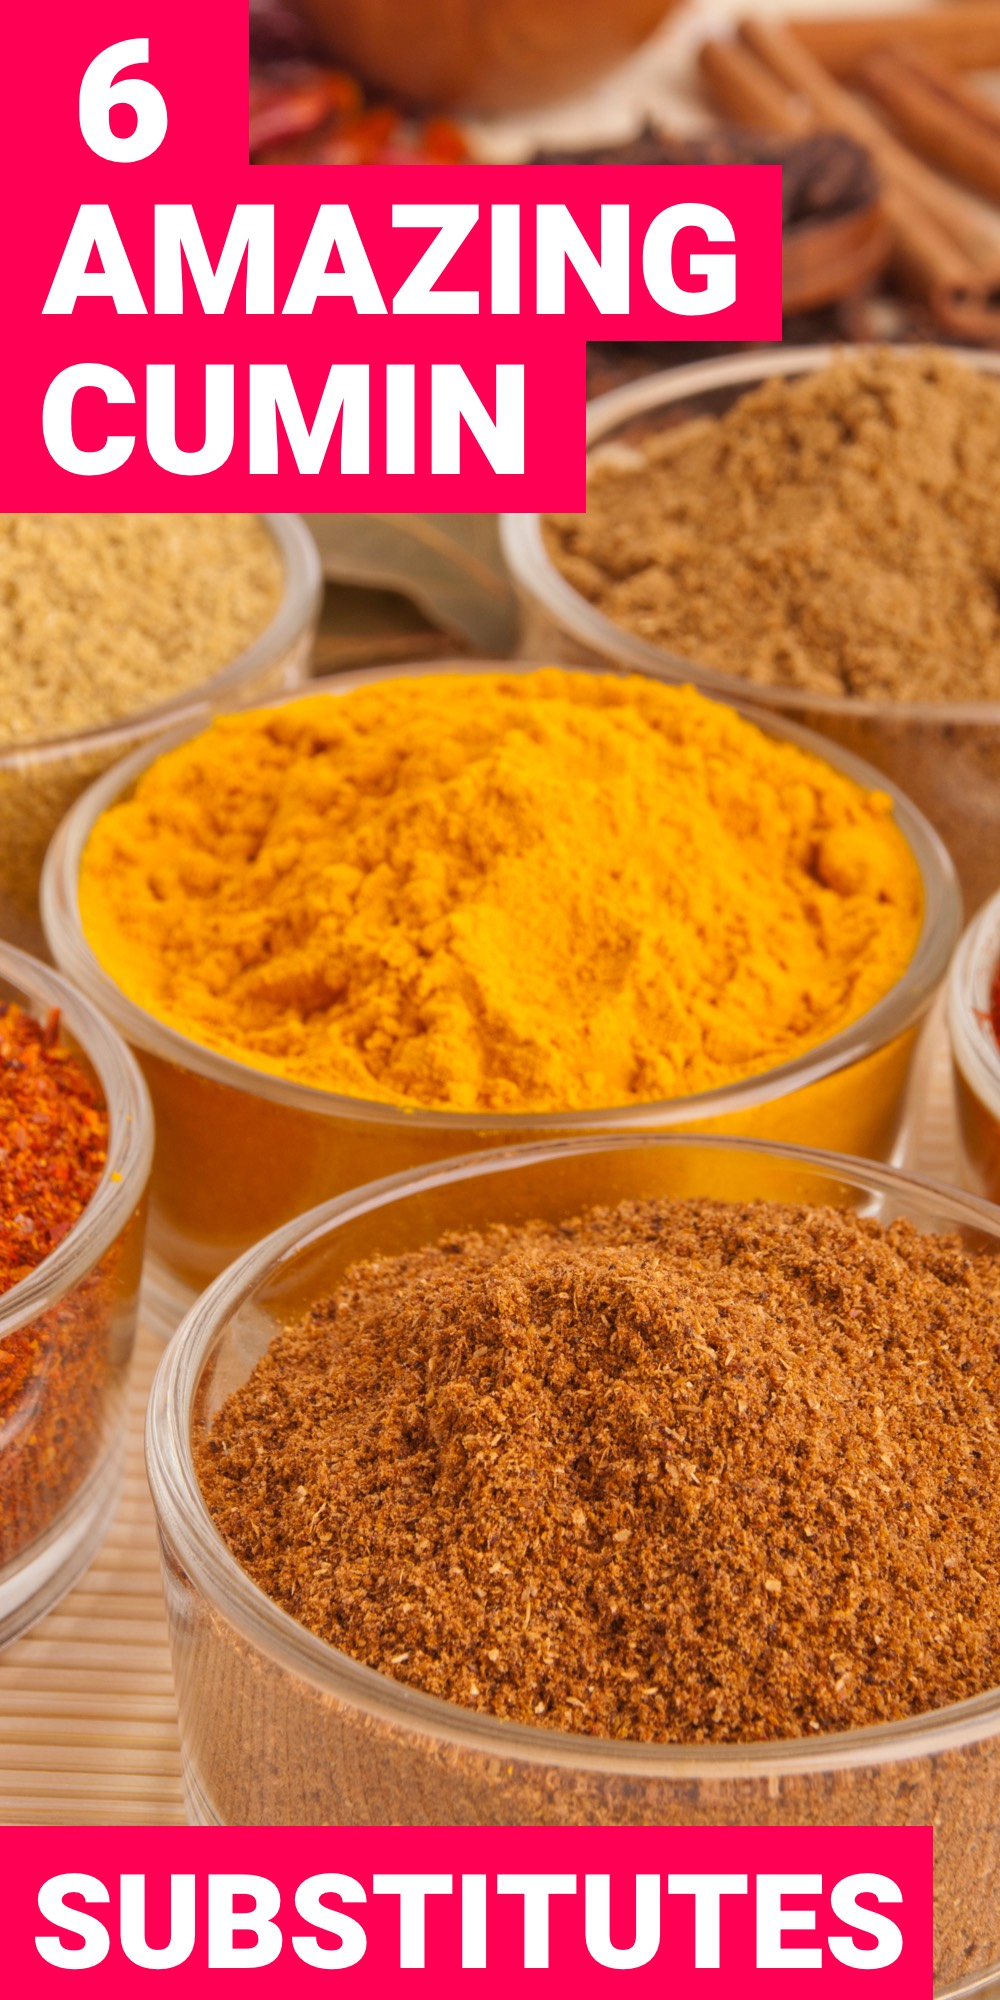 Cumin is a very popular spice that gets used in a number of recipes. However, cumin may not always be present. Here are 6 cumin substitutes for when you need them.